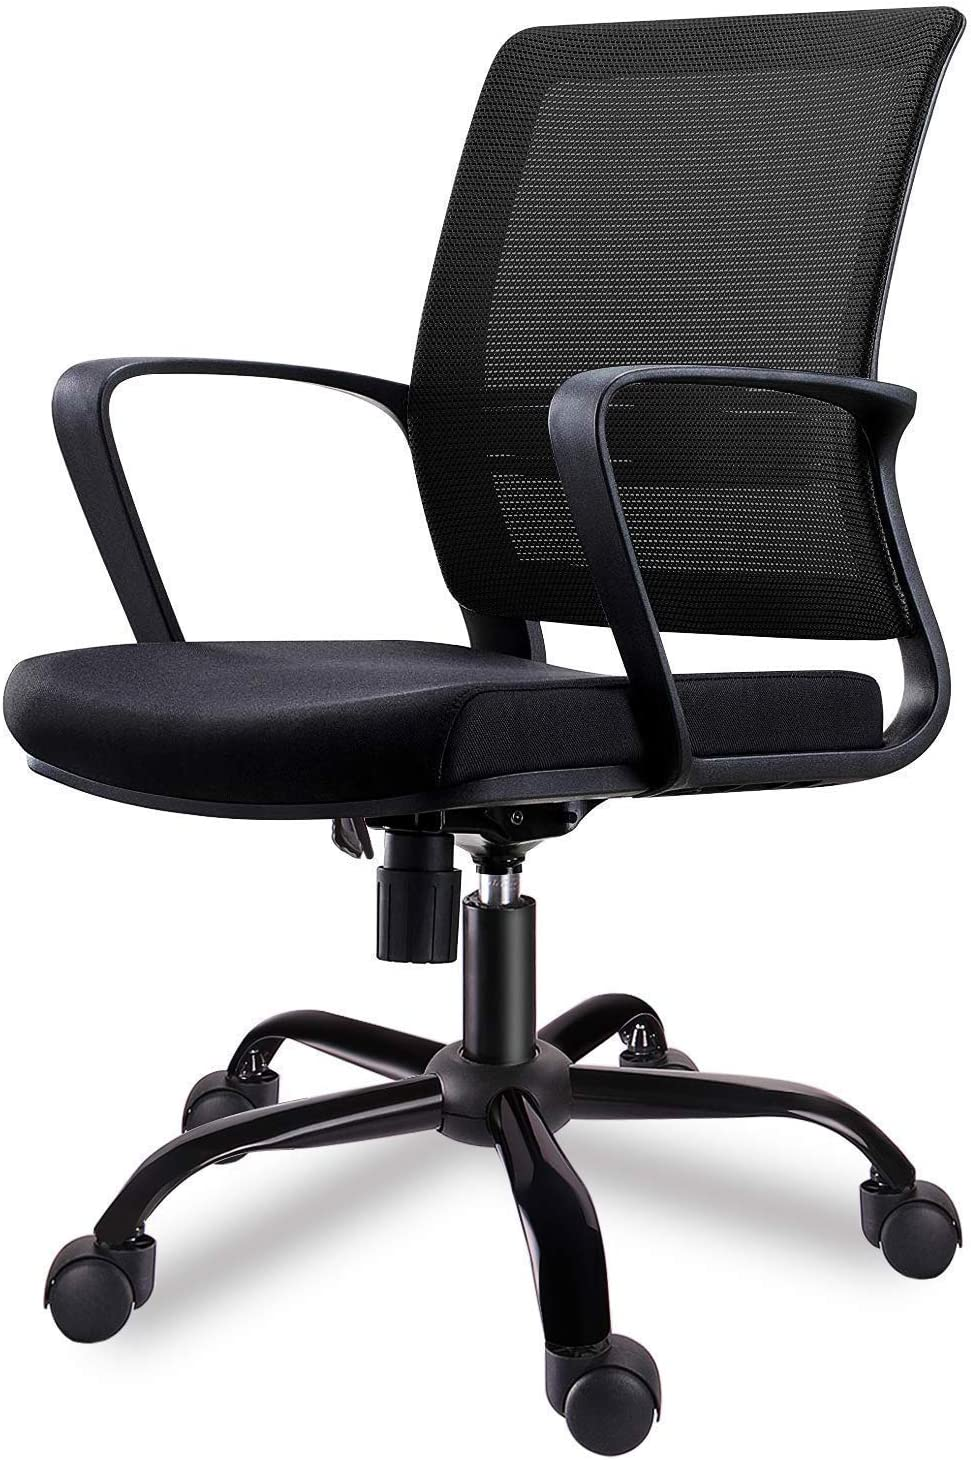 10 Best Office Chairs Under 100 In 2021 Buying Guide